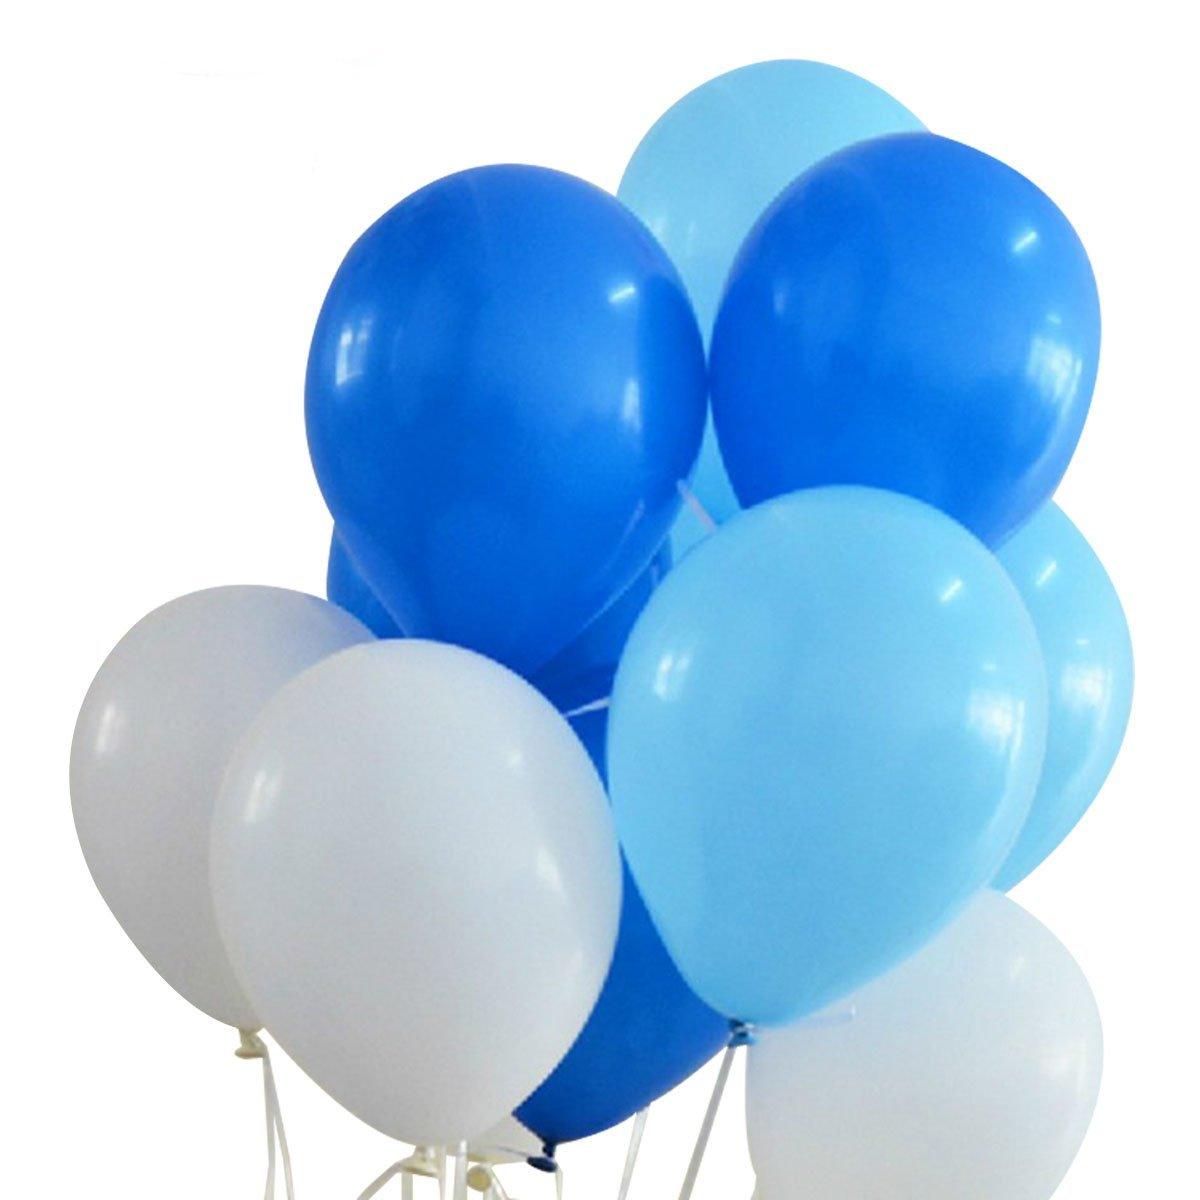 Amazon Com Qishi Ballons Party Balloons Childrens Party Large Balloons Size12 White Blue Light Blue Balloons 100pcs Pack Toys Games